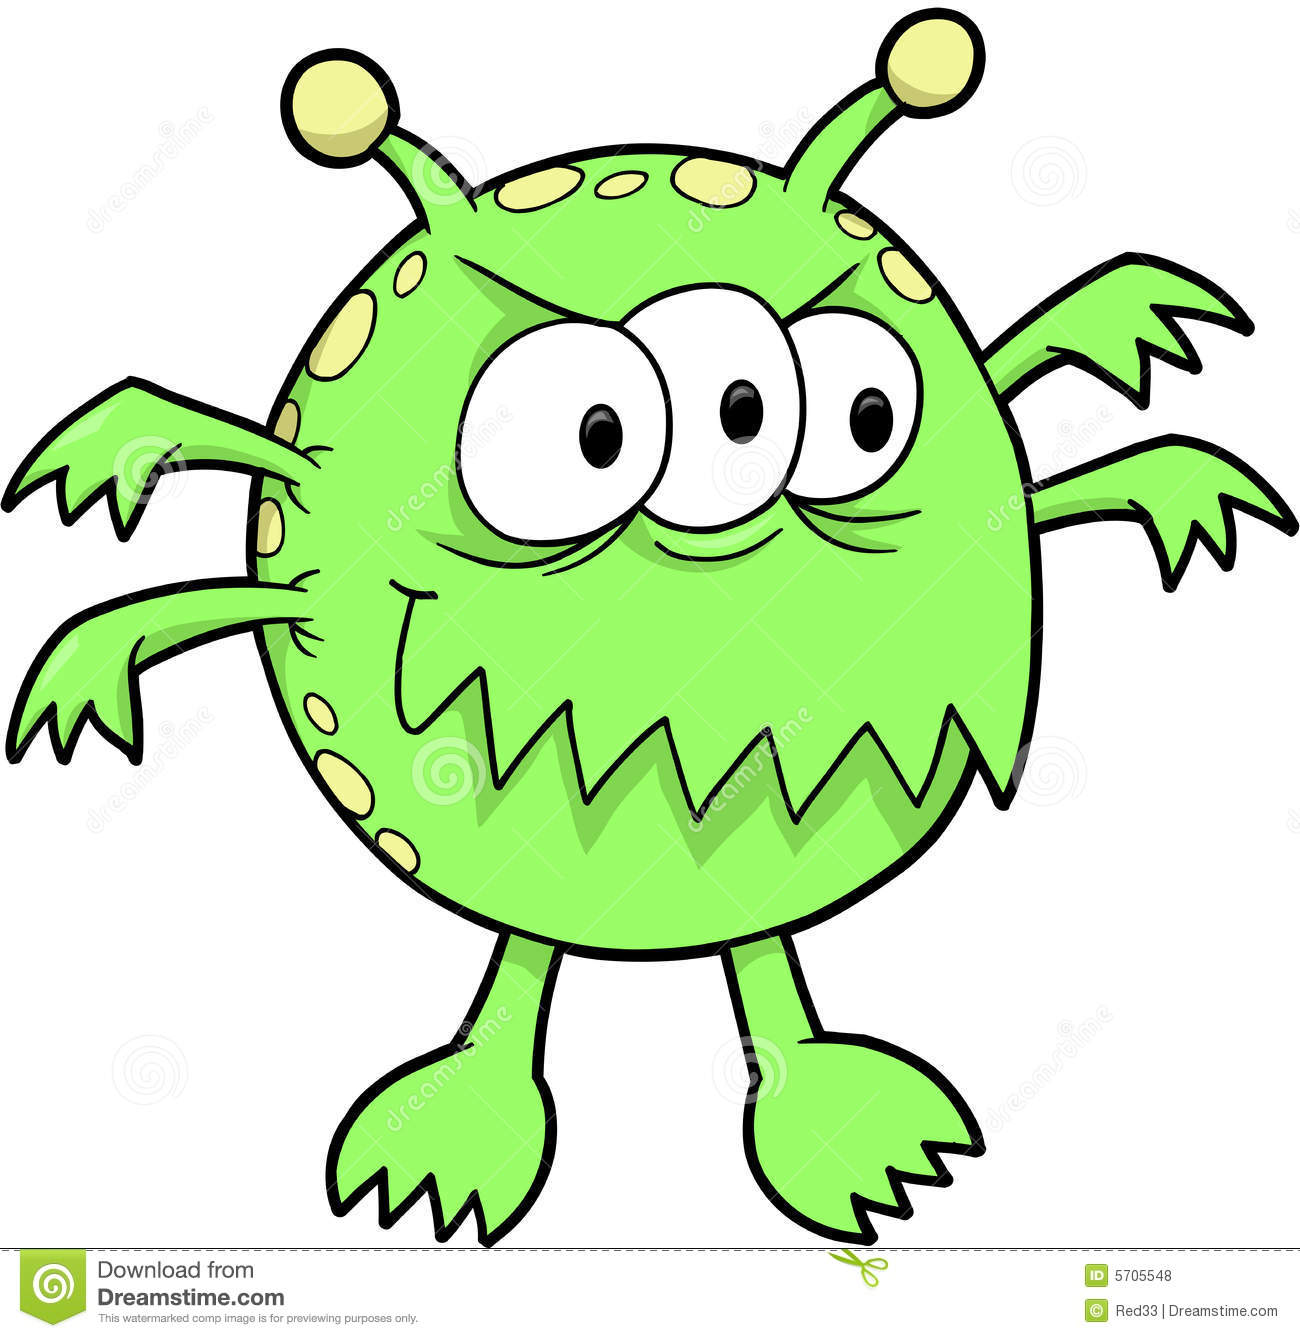 Monster Vector Illustration Royalty Free Stock Photos - Image: 5705548